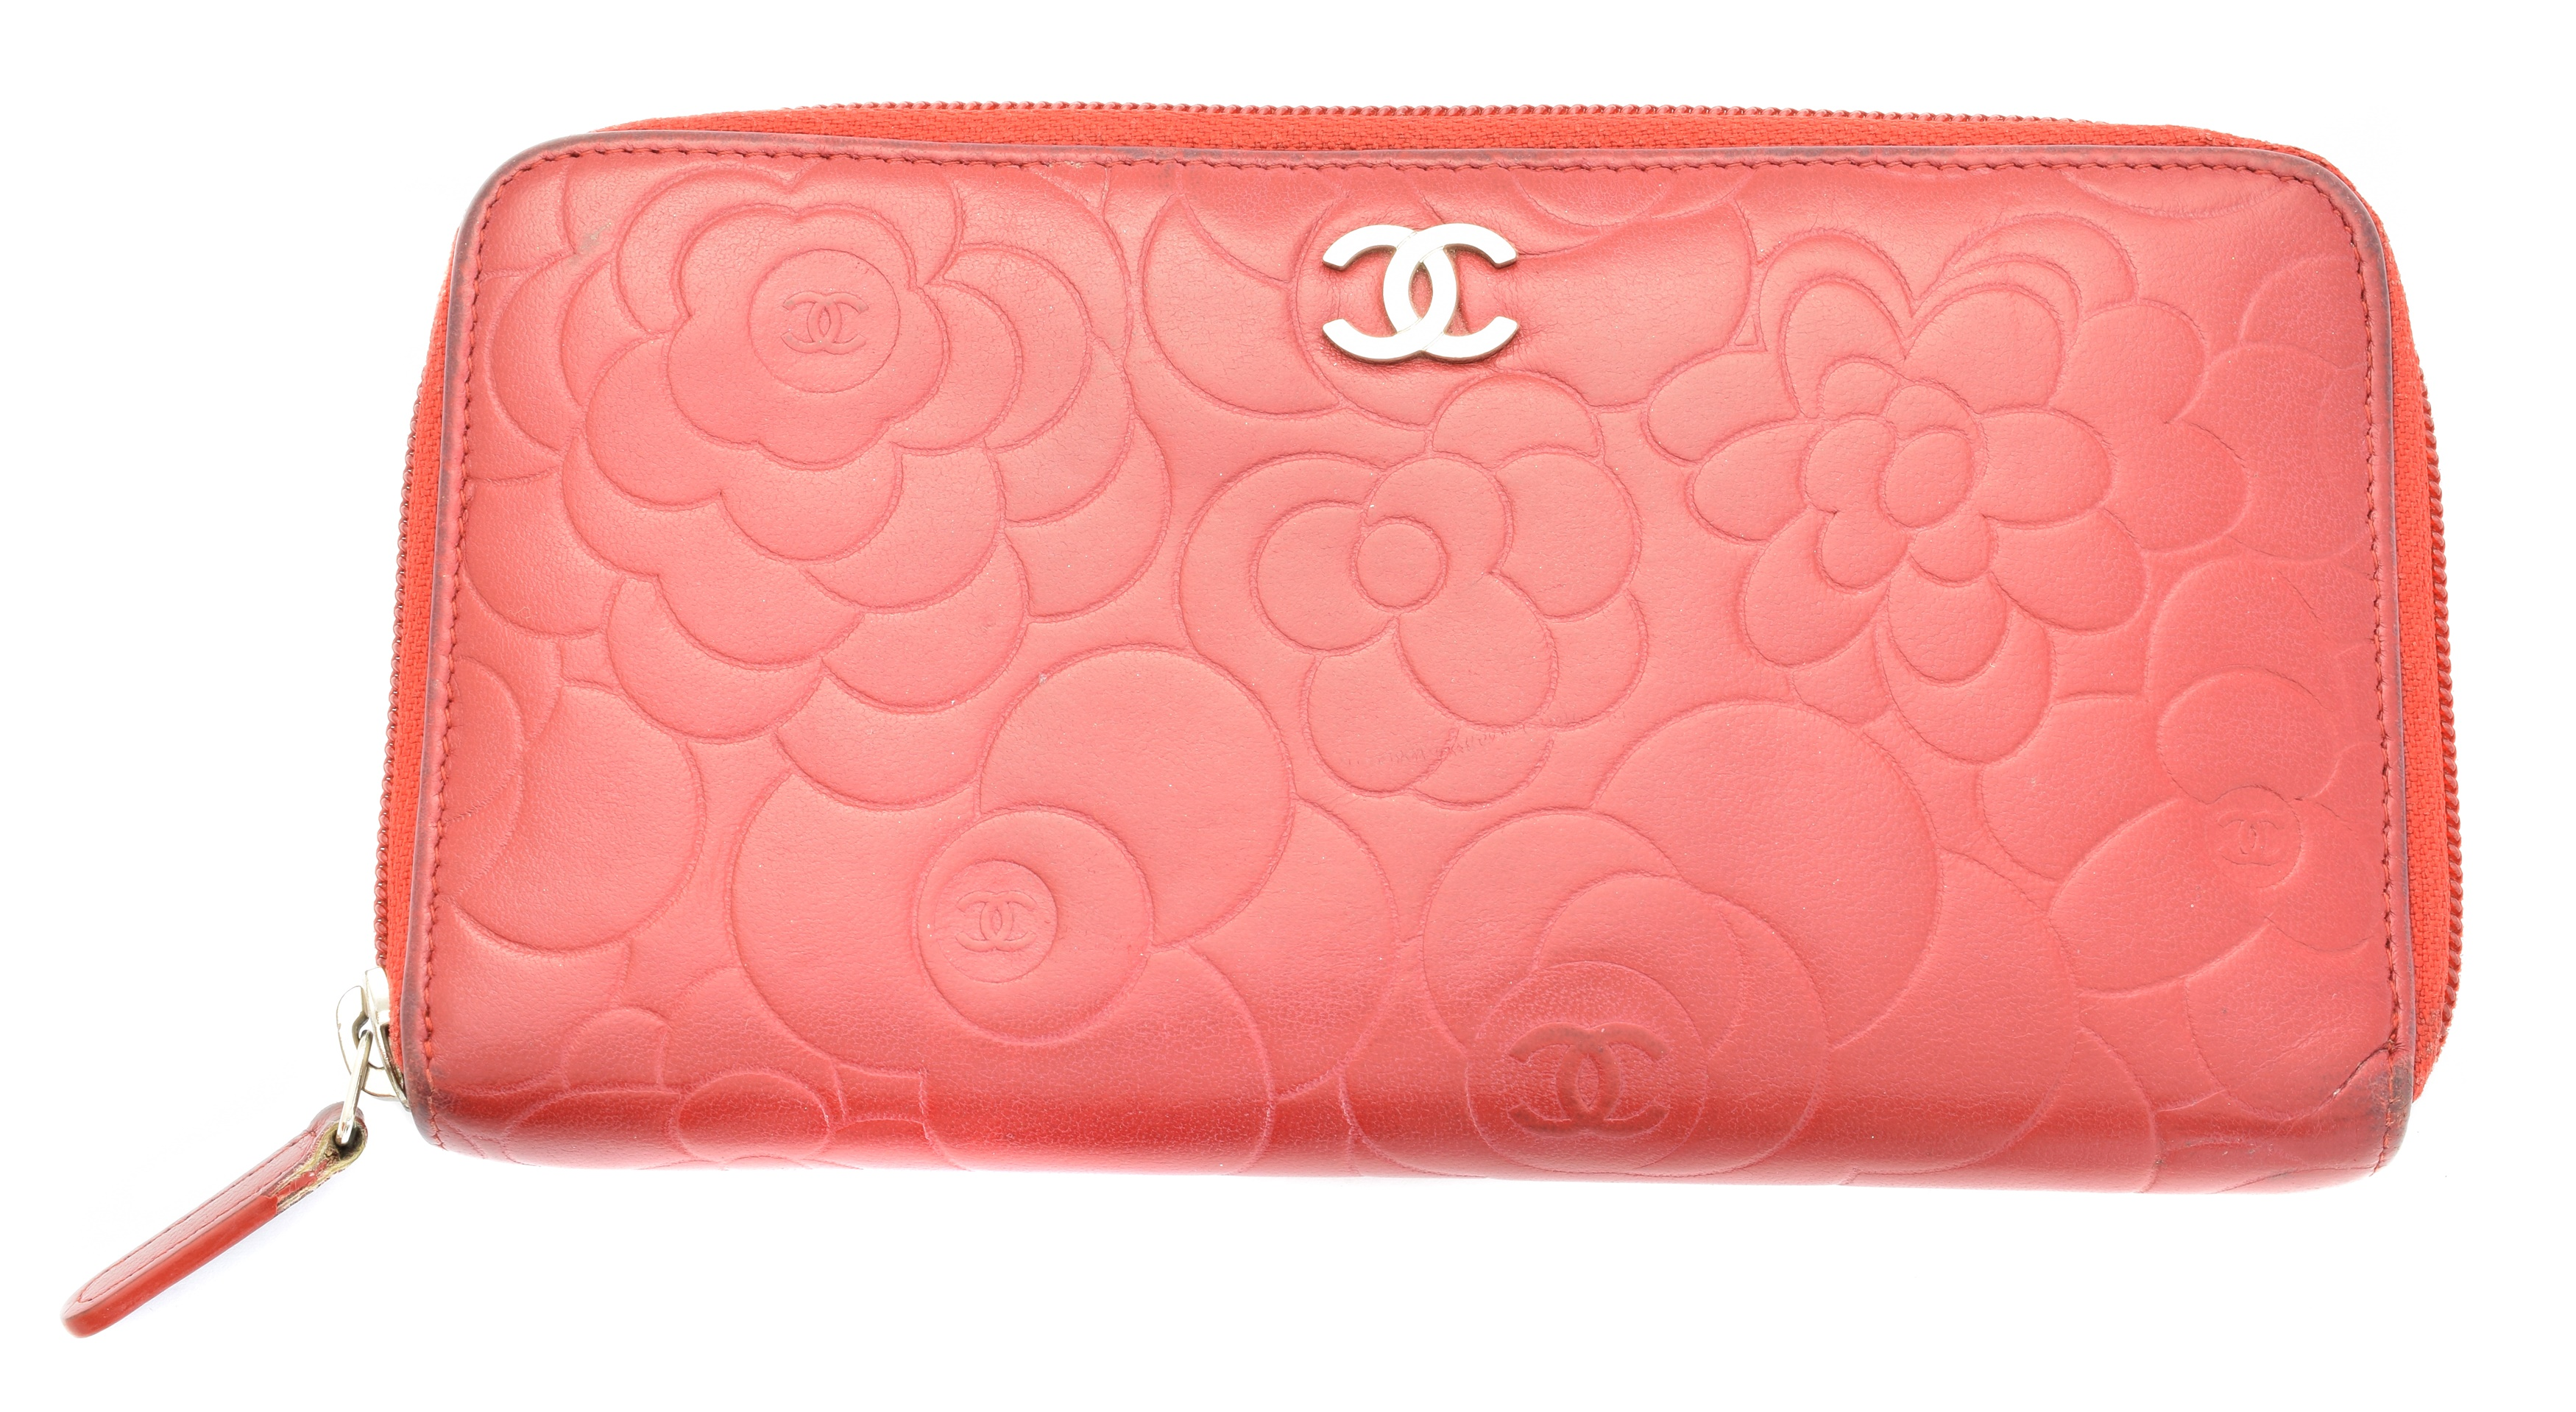 A Chanel Floral Embossed Zip Around Wallet,